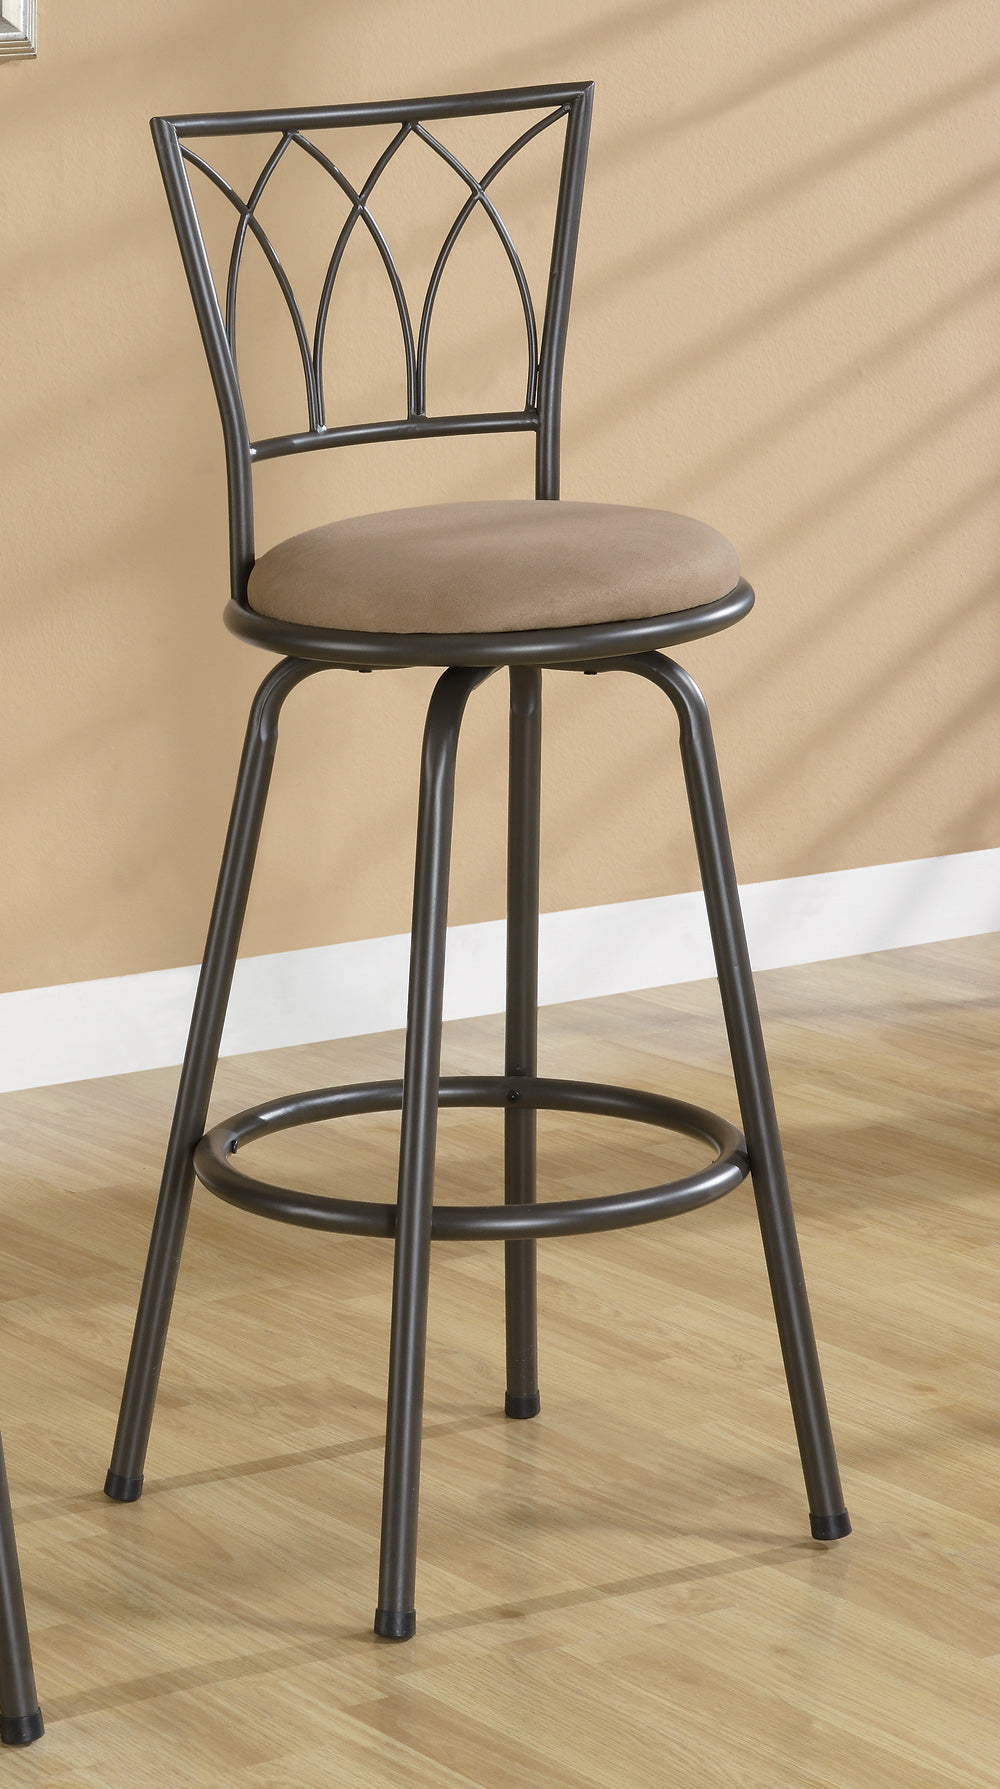 Pleasant Coaster Dining Chairs And Bar Stools 29 Metal Bar Stool With Upholstered Seat Dailytribune Chair Design For Home Dailytribuneorg